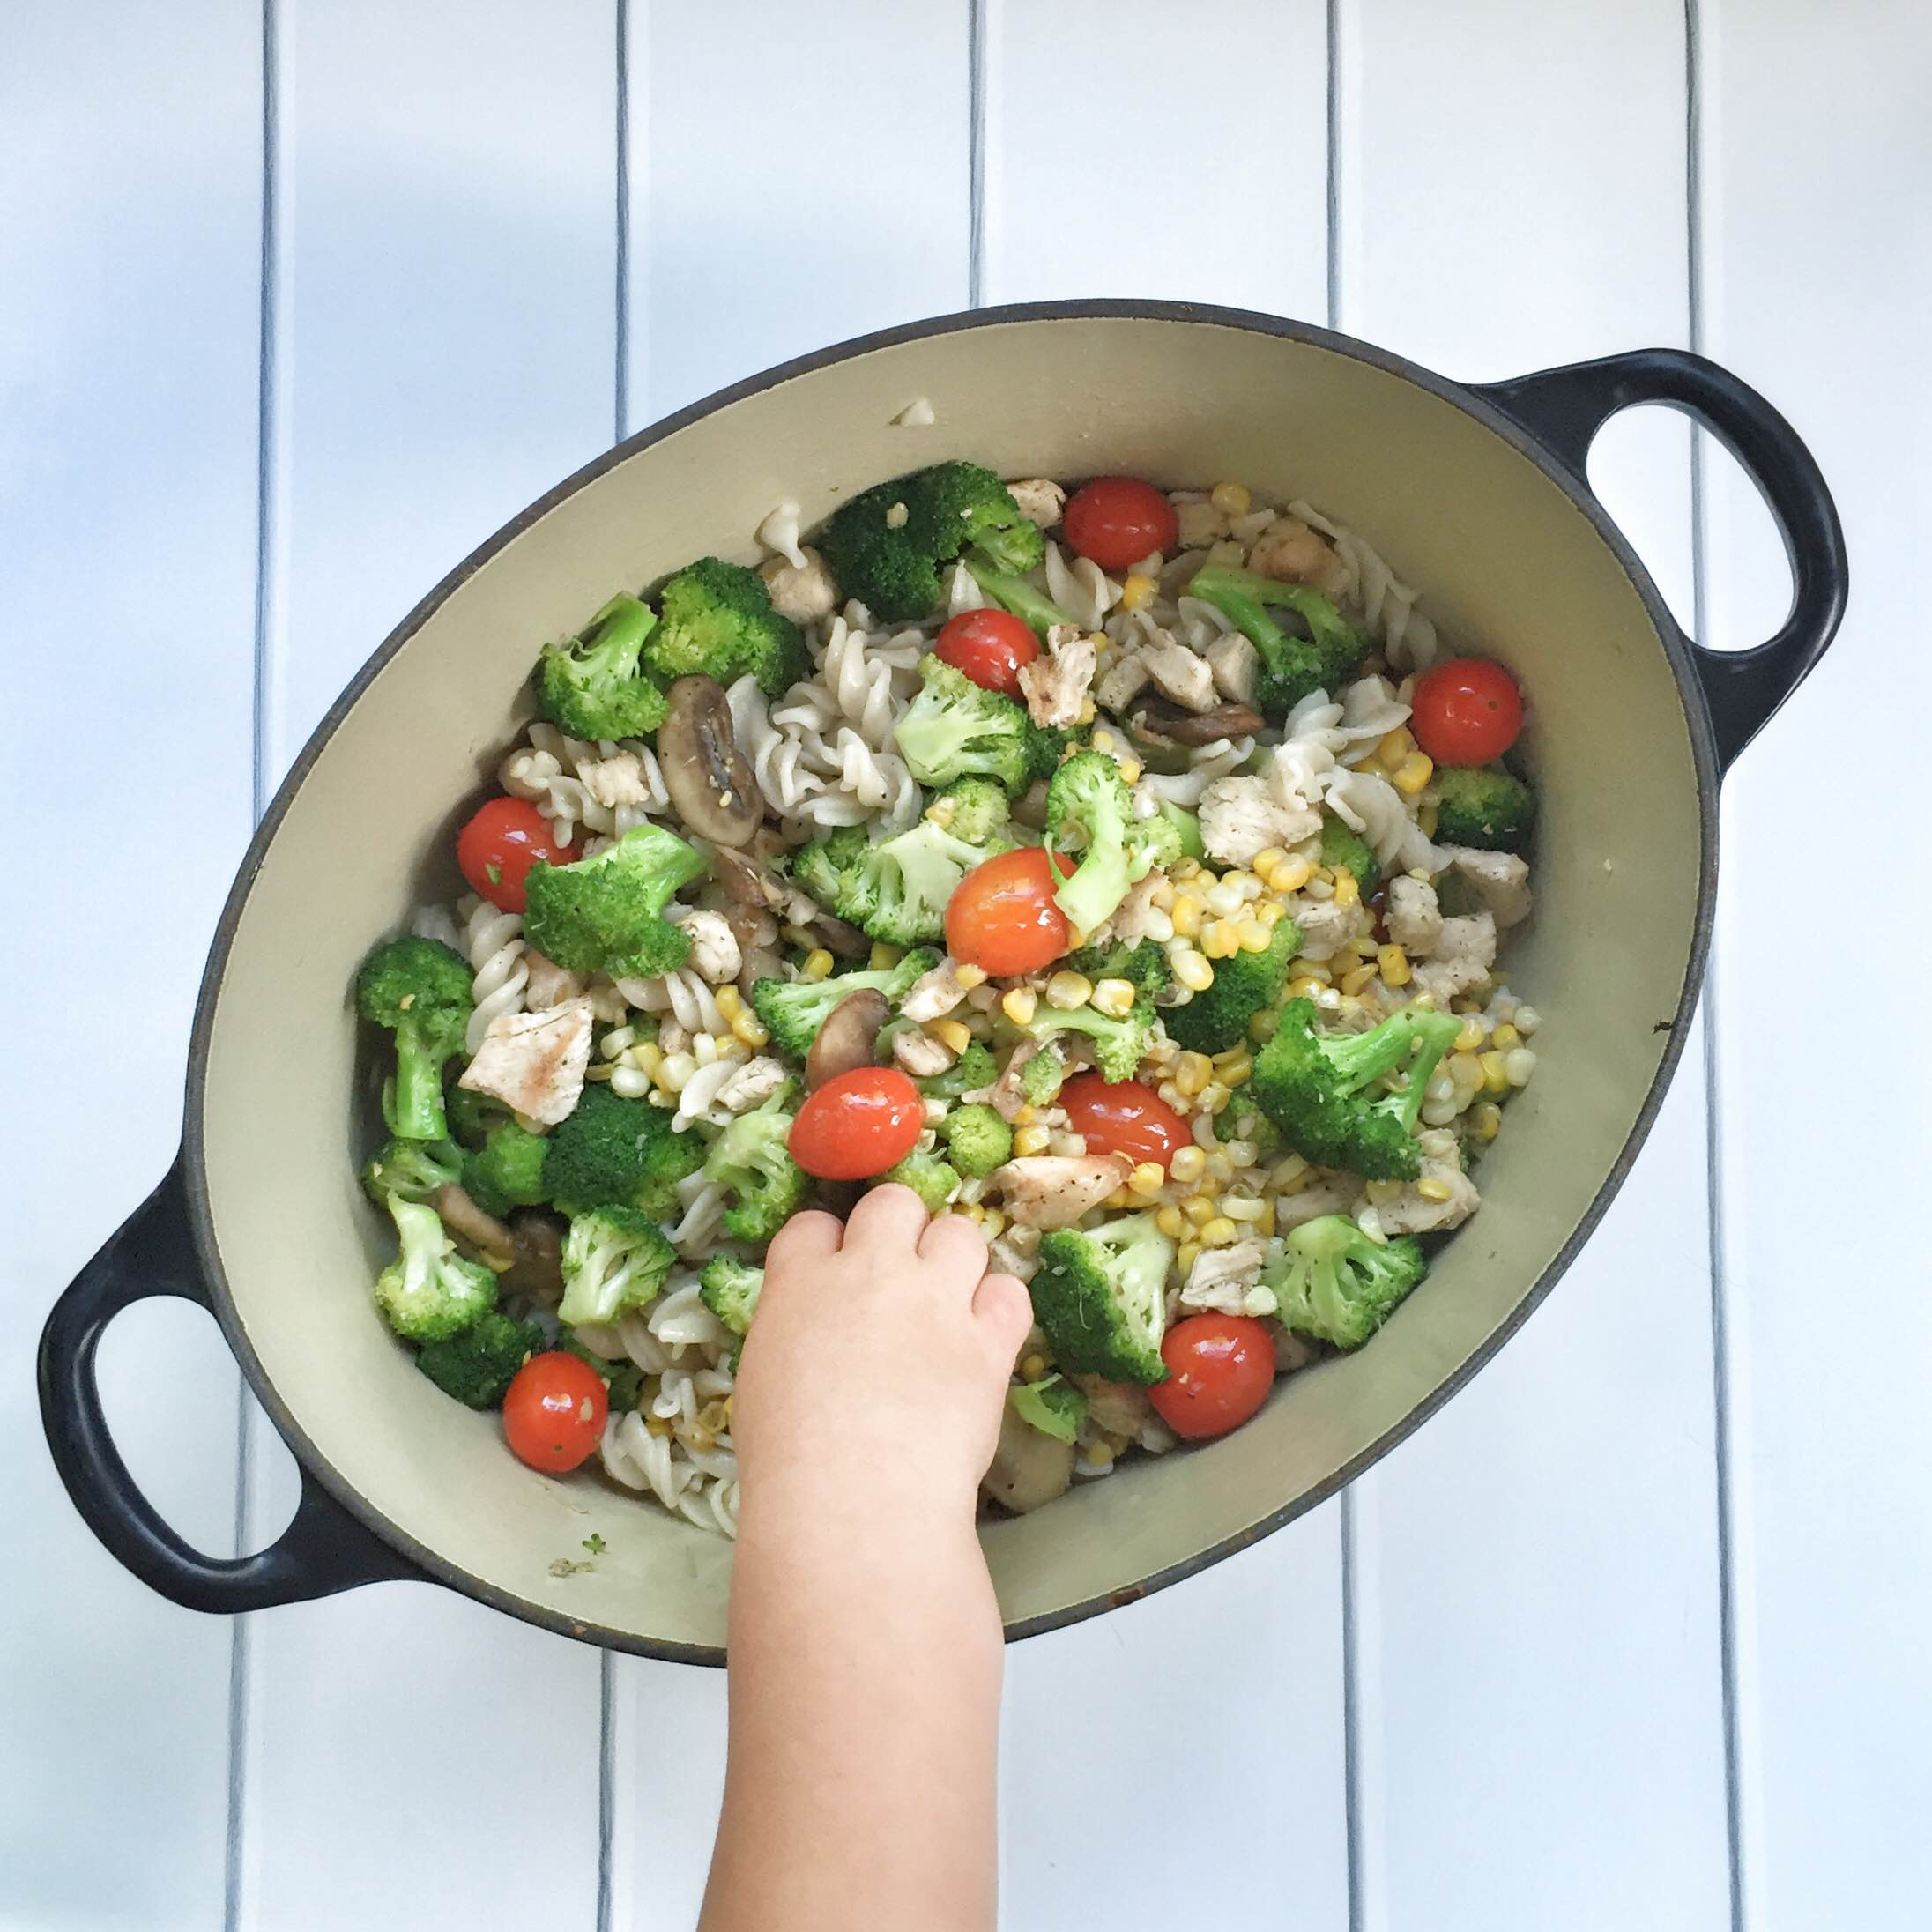 Simple summer pasta primavera | Garlic veggie pasta recipe | What's for dinner tonight? Try this super simple summer pasta recipe! GinaKirk.com @ginaekirk